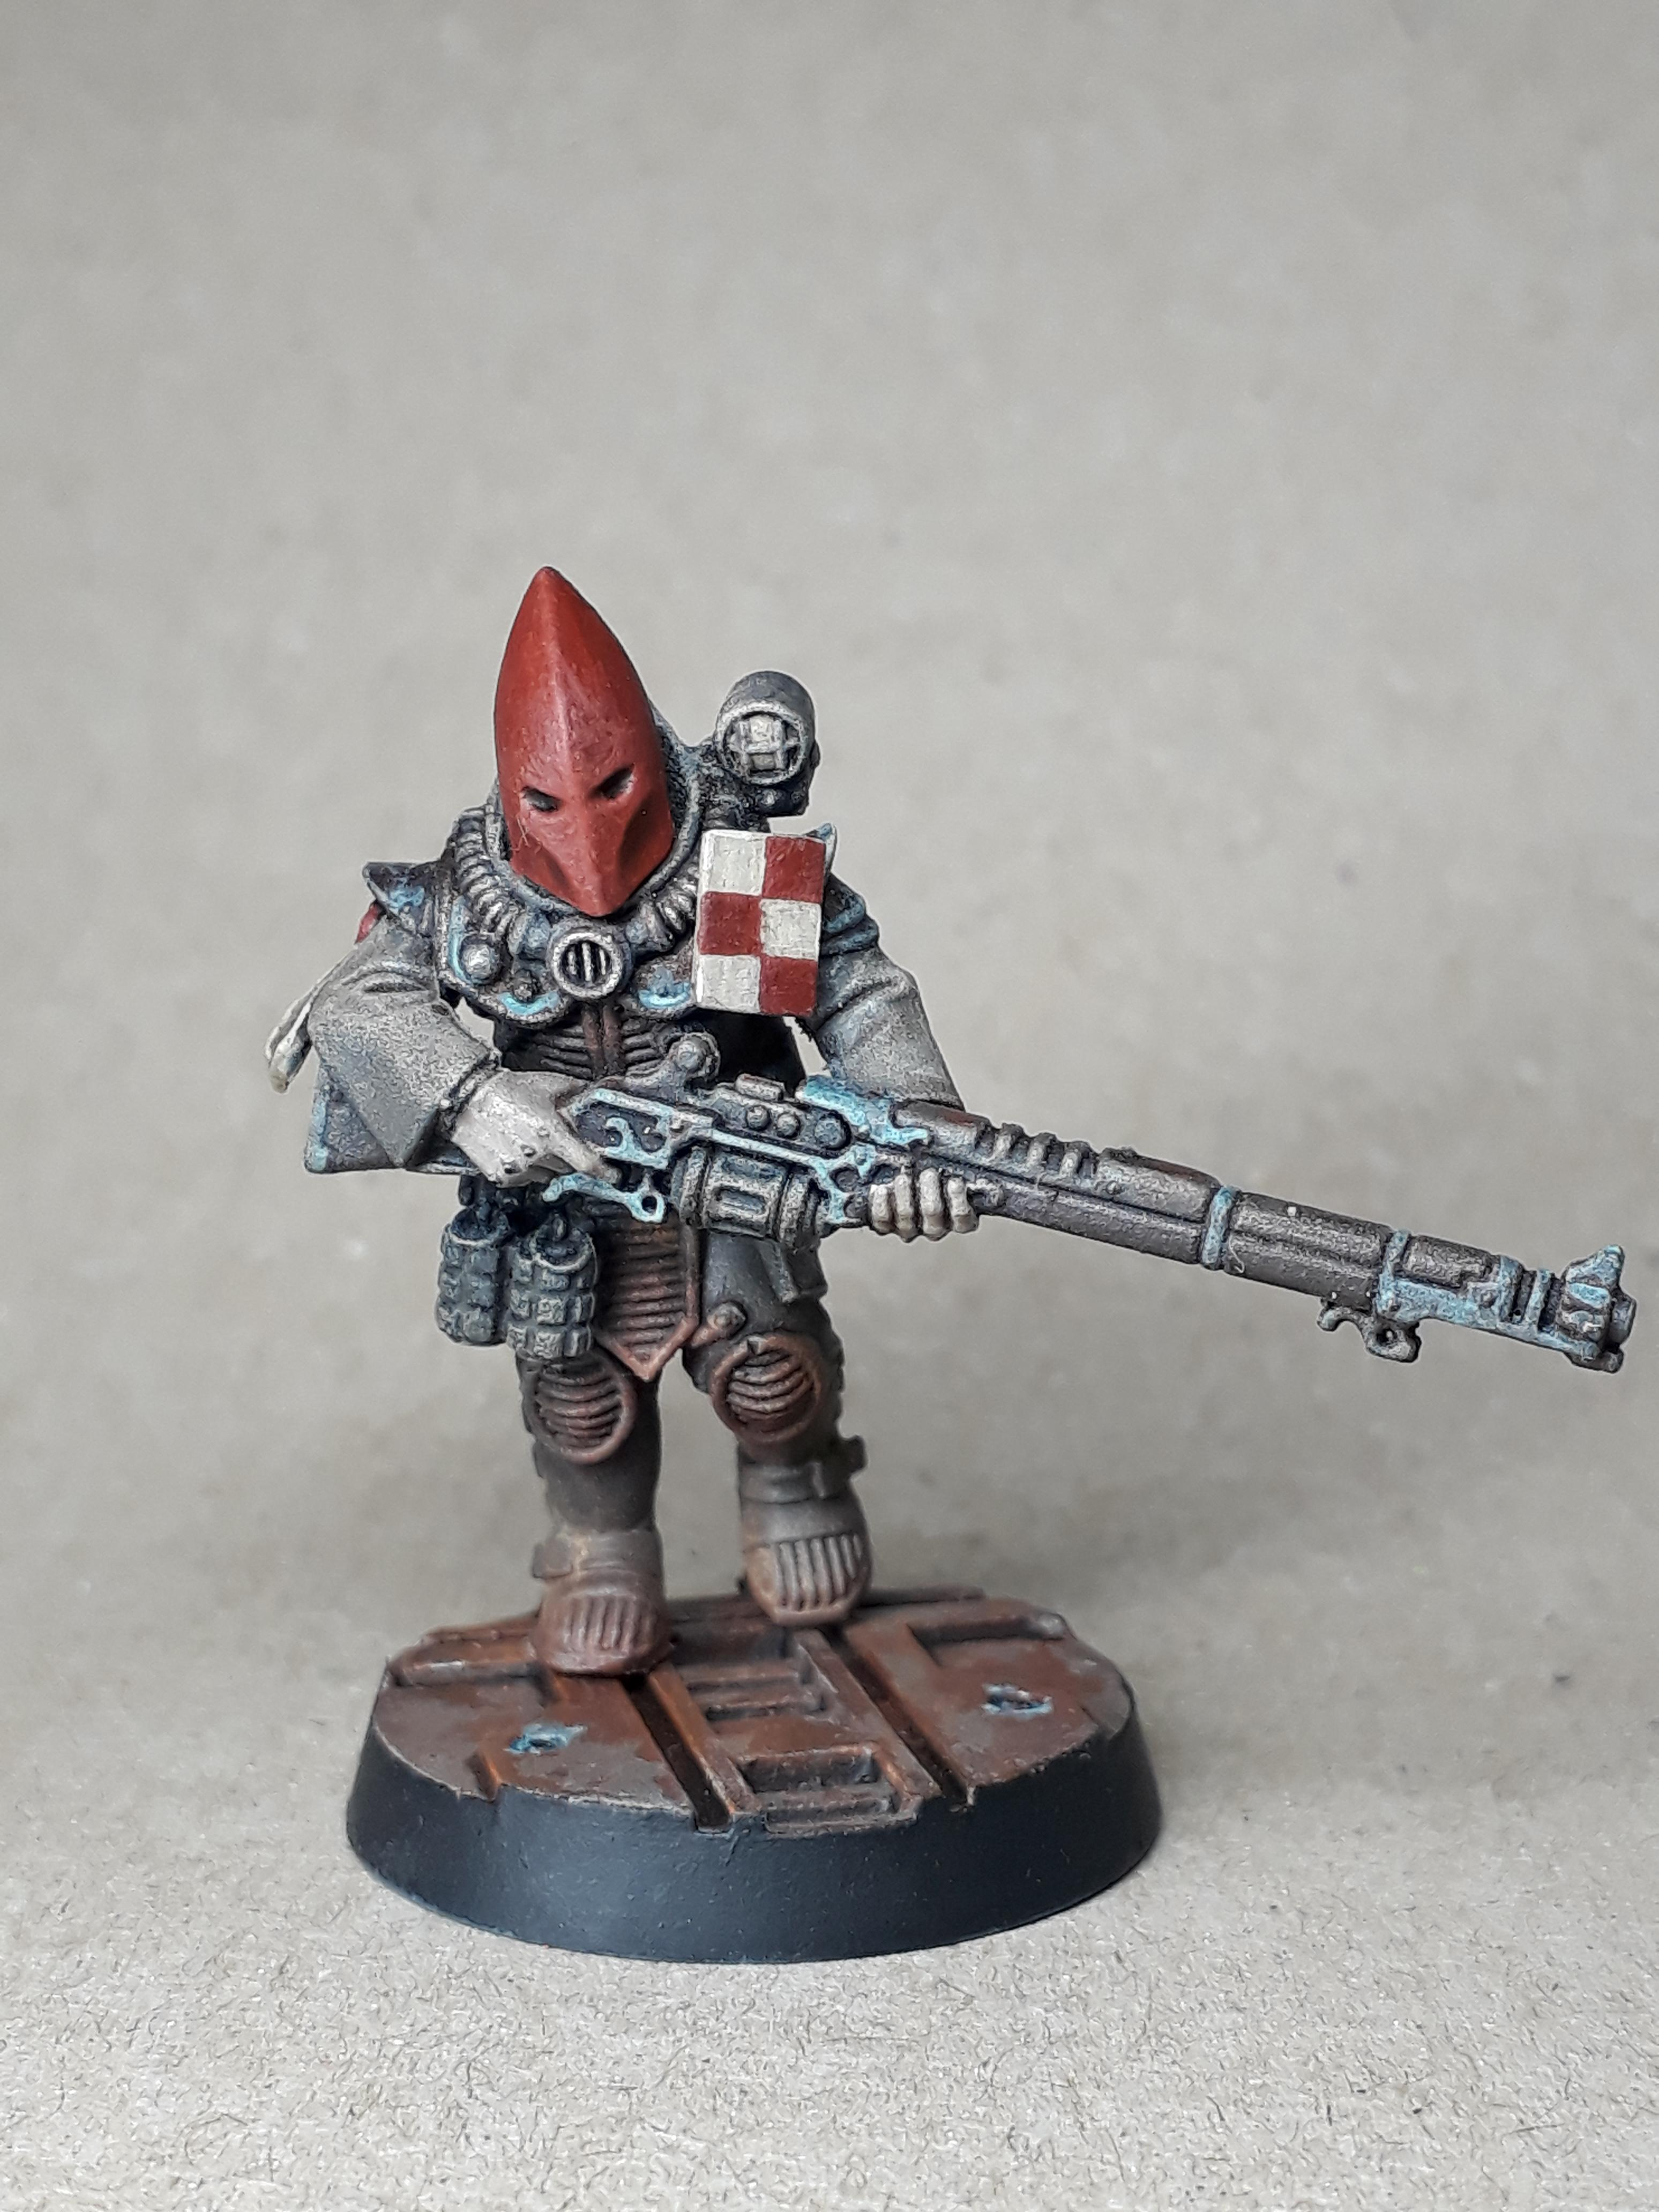 Astra Militarum, Base, Cultist, Imperial Cultist, Imperial Guard, Infantry Squad, Rust Effect, Warhammer 40,000, Weathered